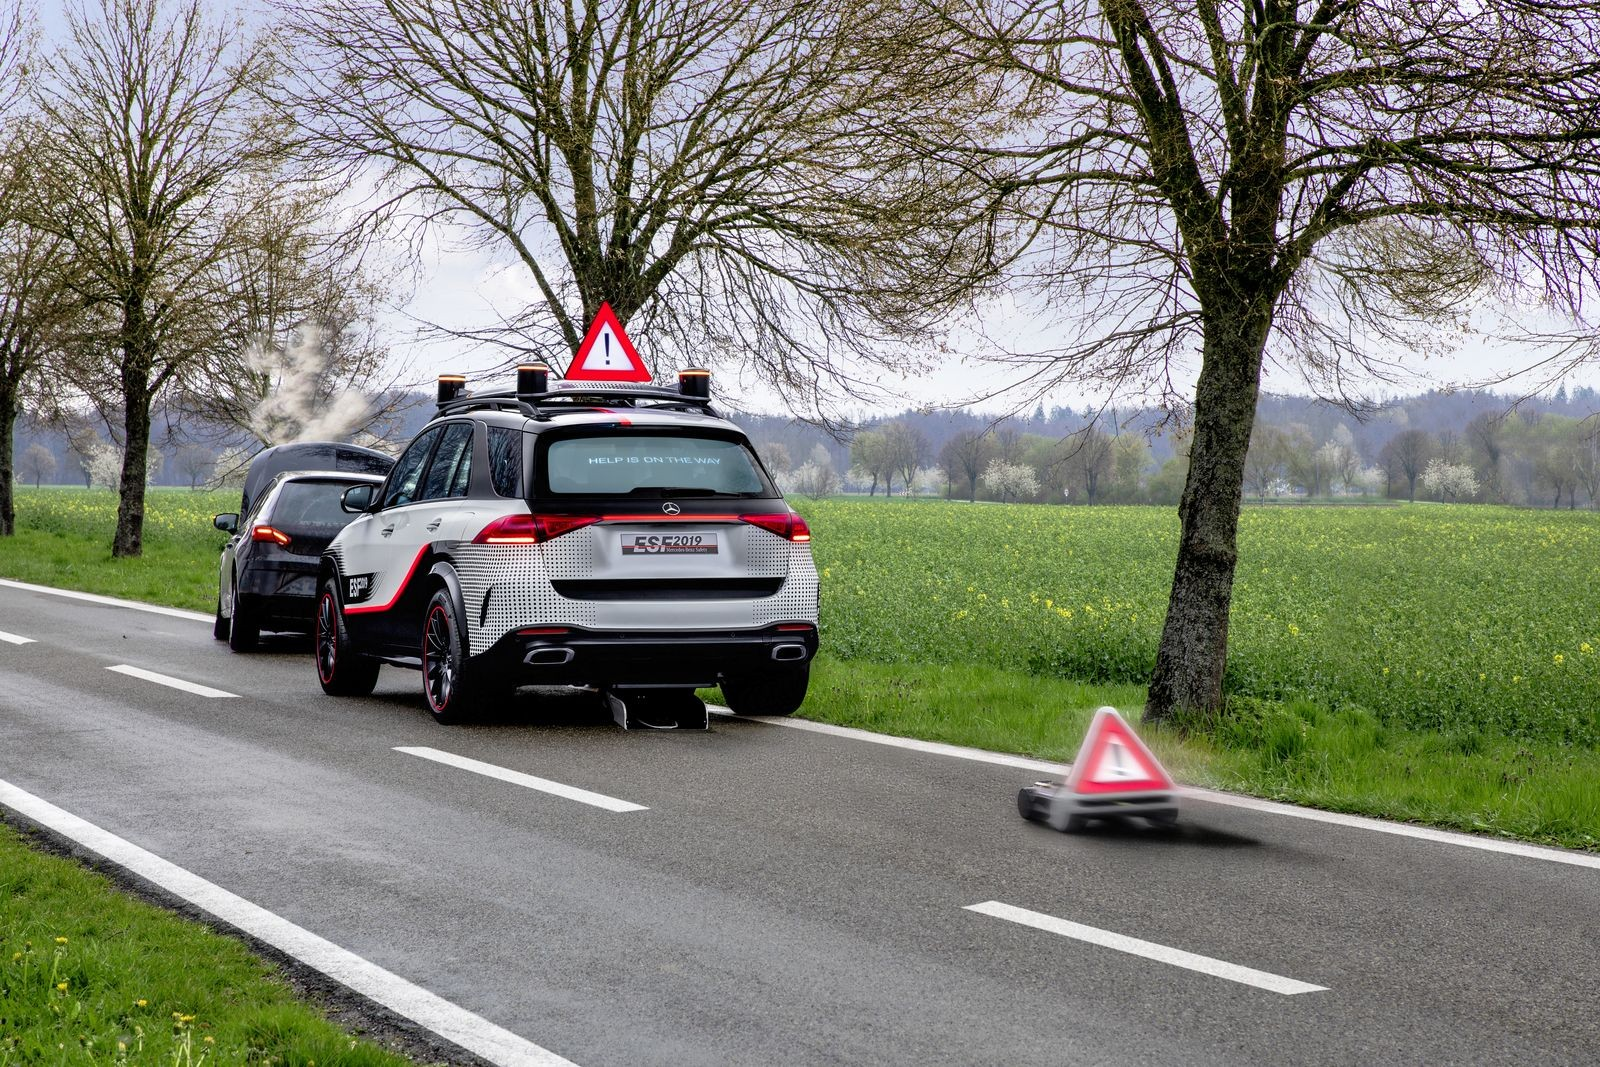 Das Experimental-Sicherheits-Fahrzeug (ESF) 2019 The Experimental Safety Vehicle (ESF) 2019